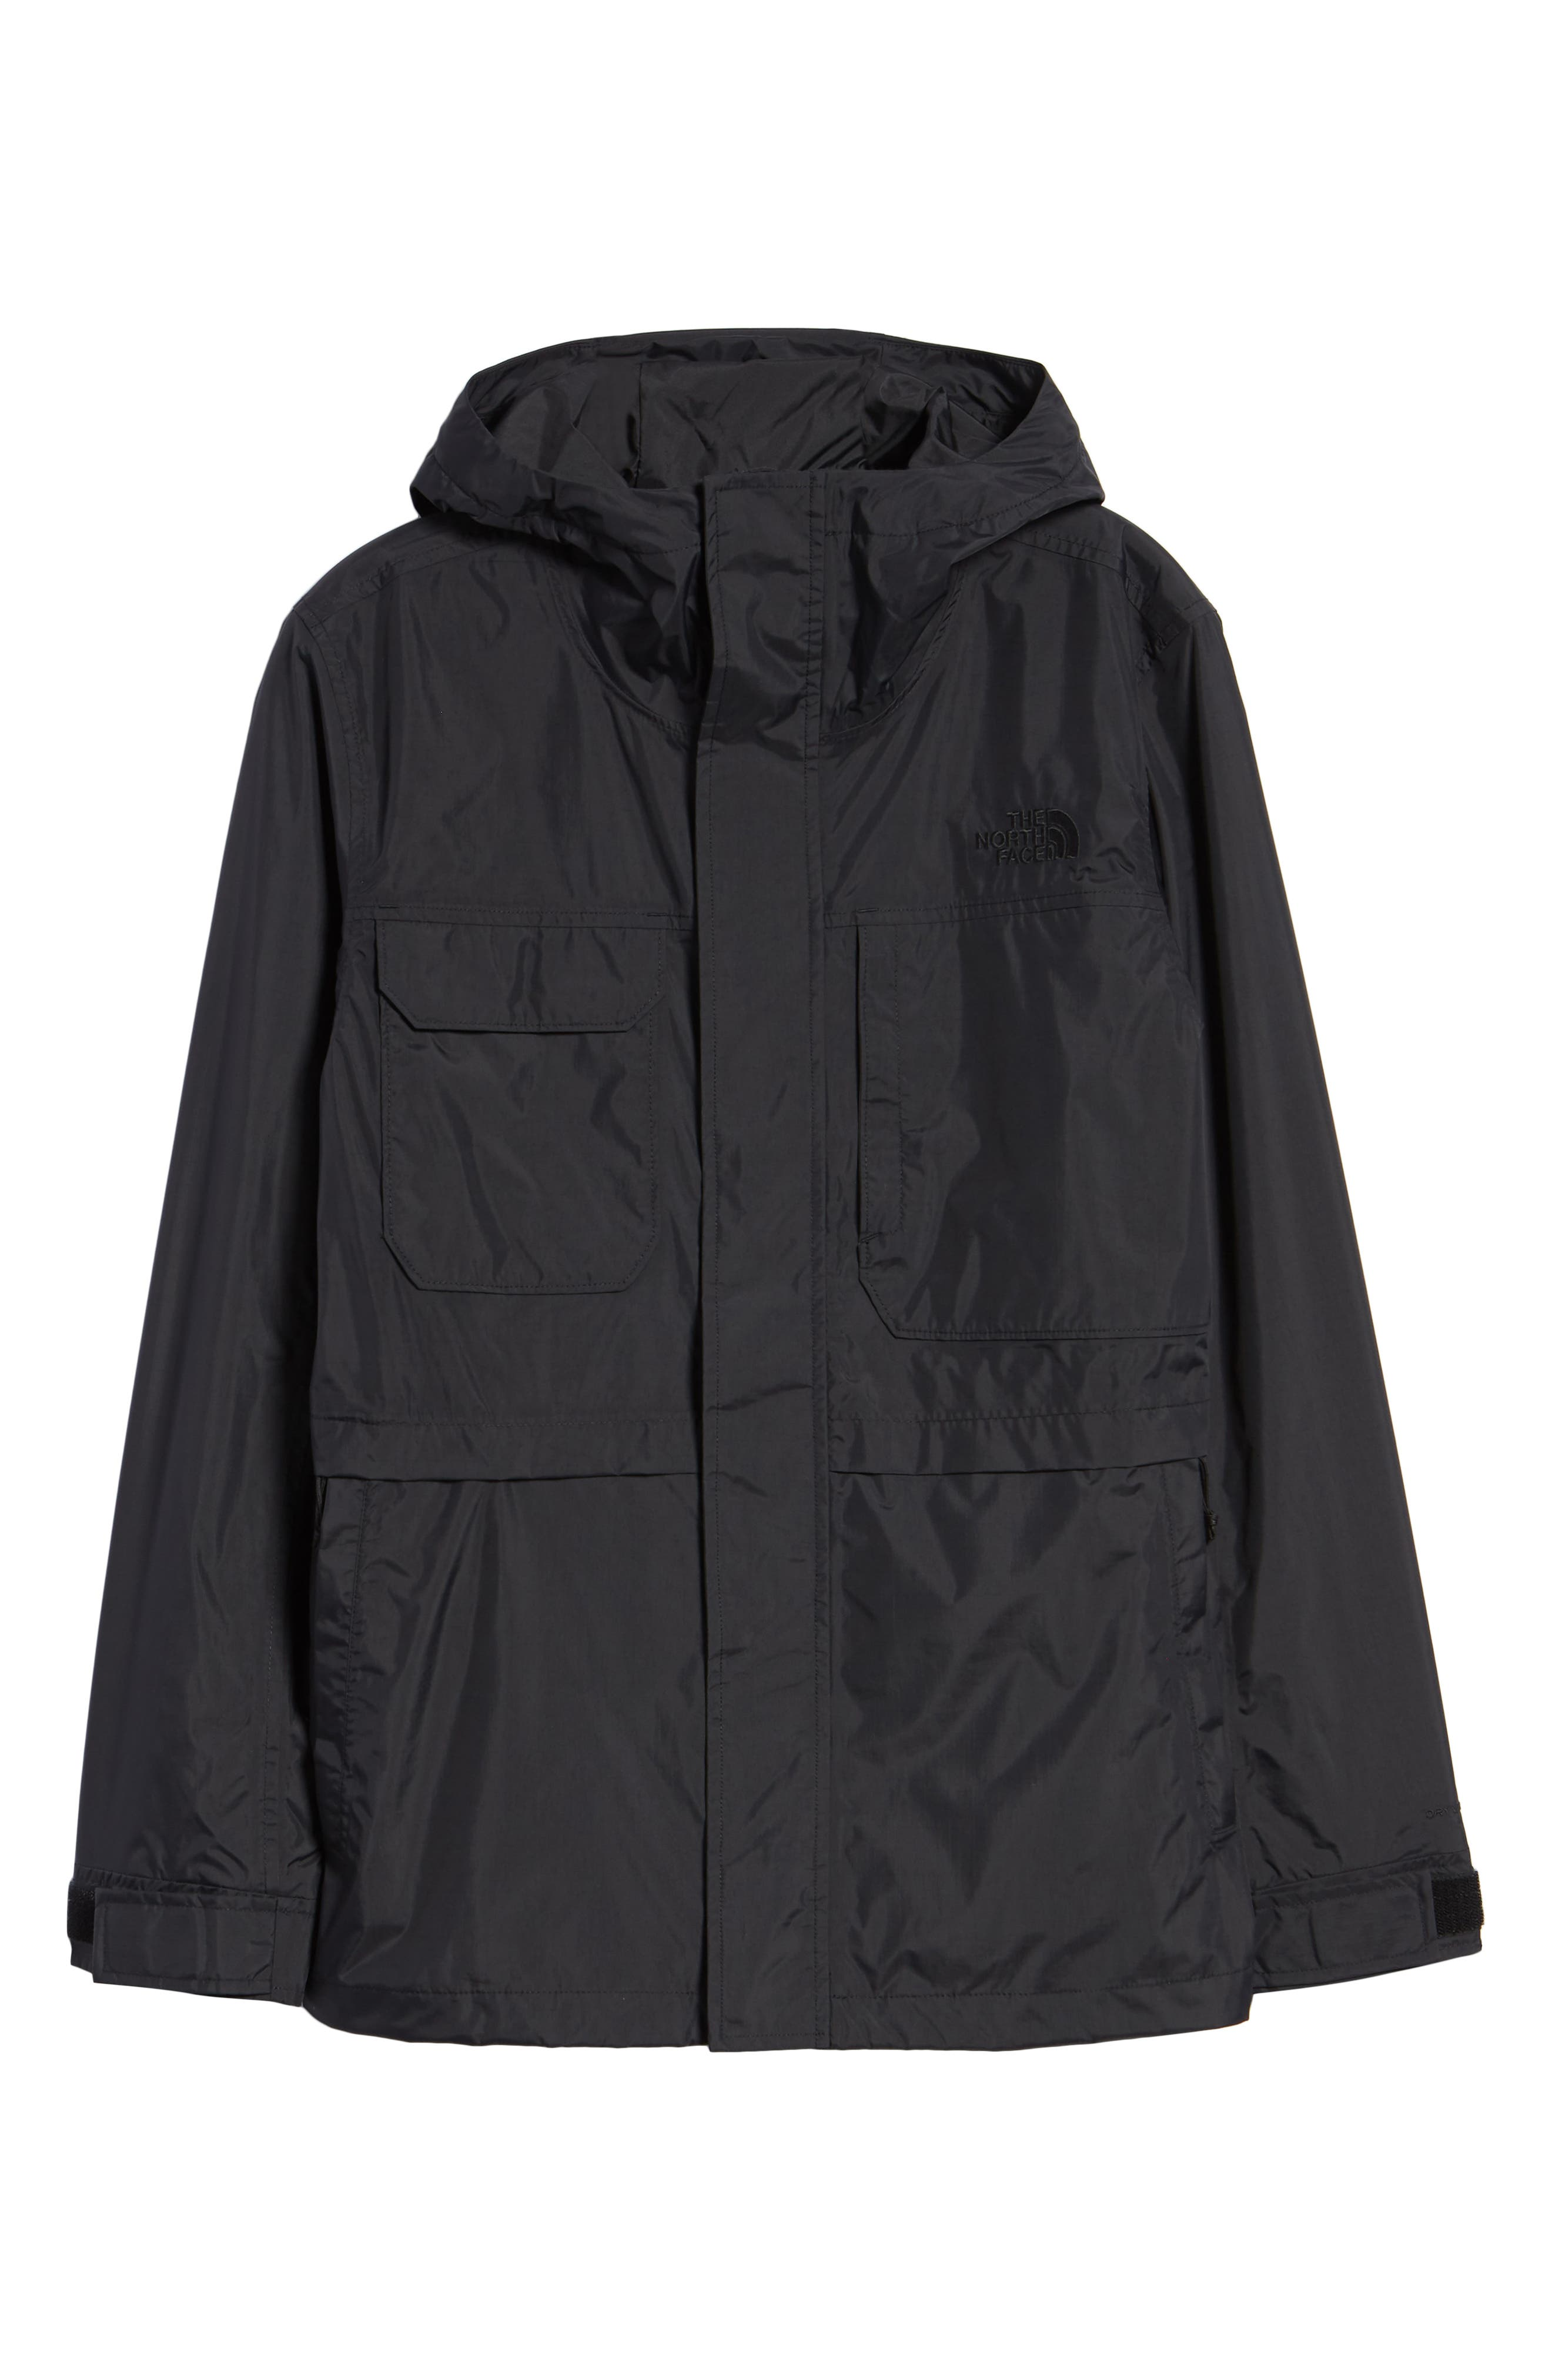 THE NORTH FACE, Zoomie Rain Jacket, Alternate thumbnail 6, color, 001